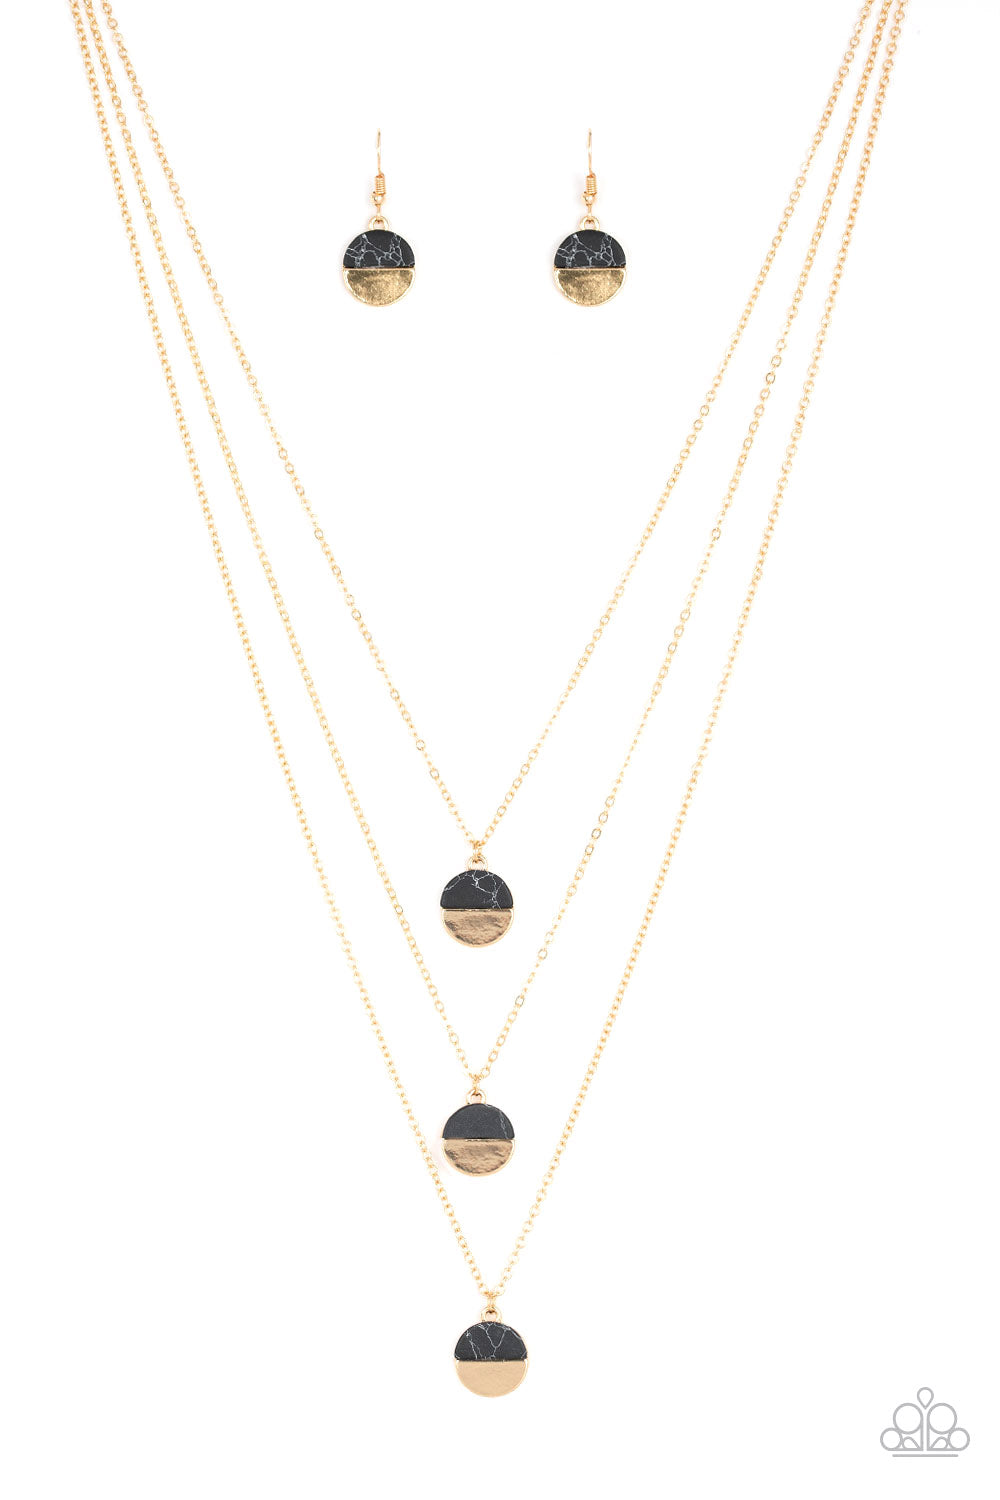 Paparazzi Rural Reconstruction Black 3 Strand Necklace & Earrings Set